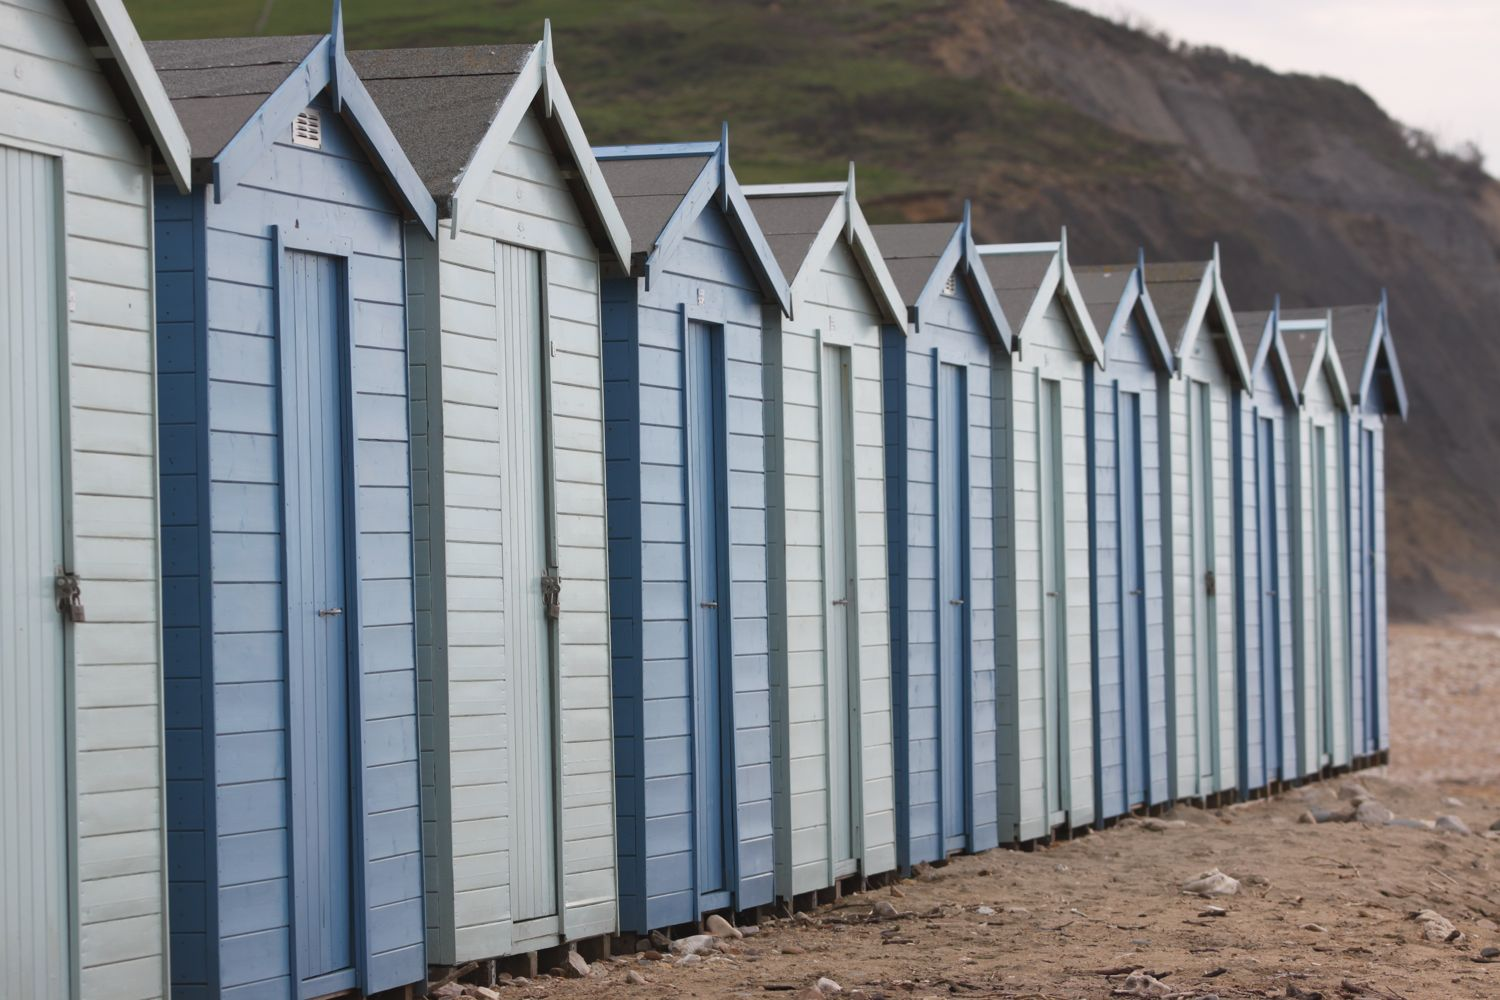 beach huts on charmouth beach